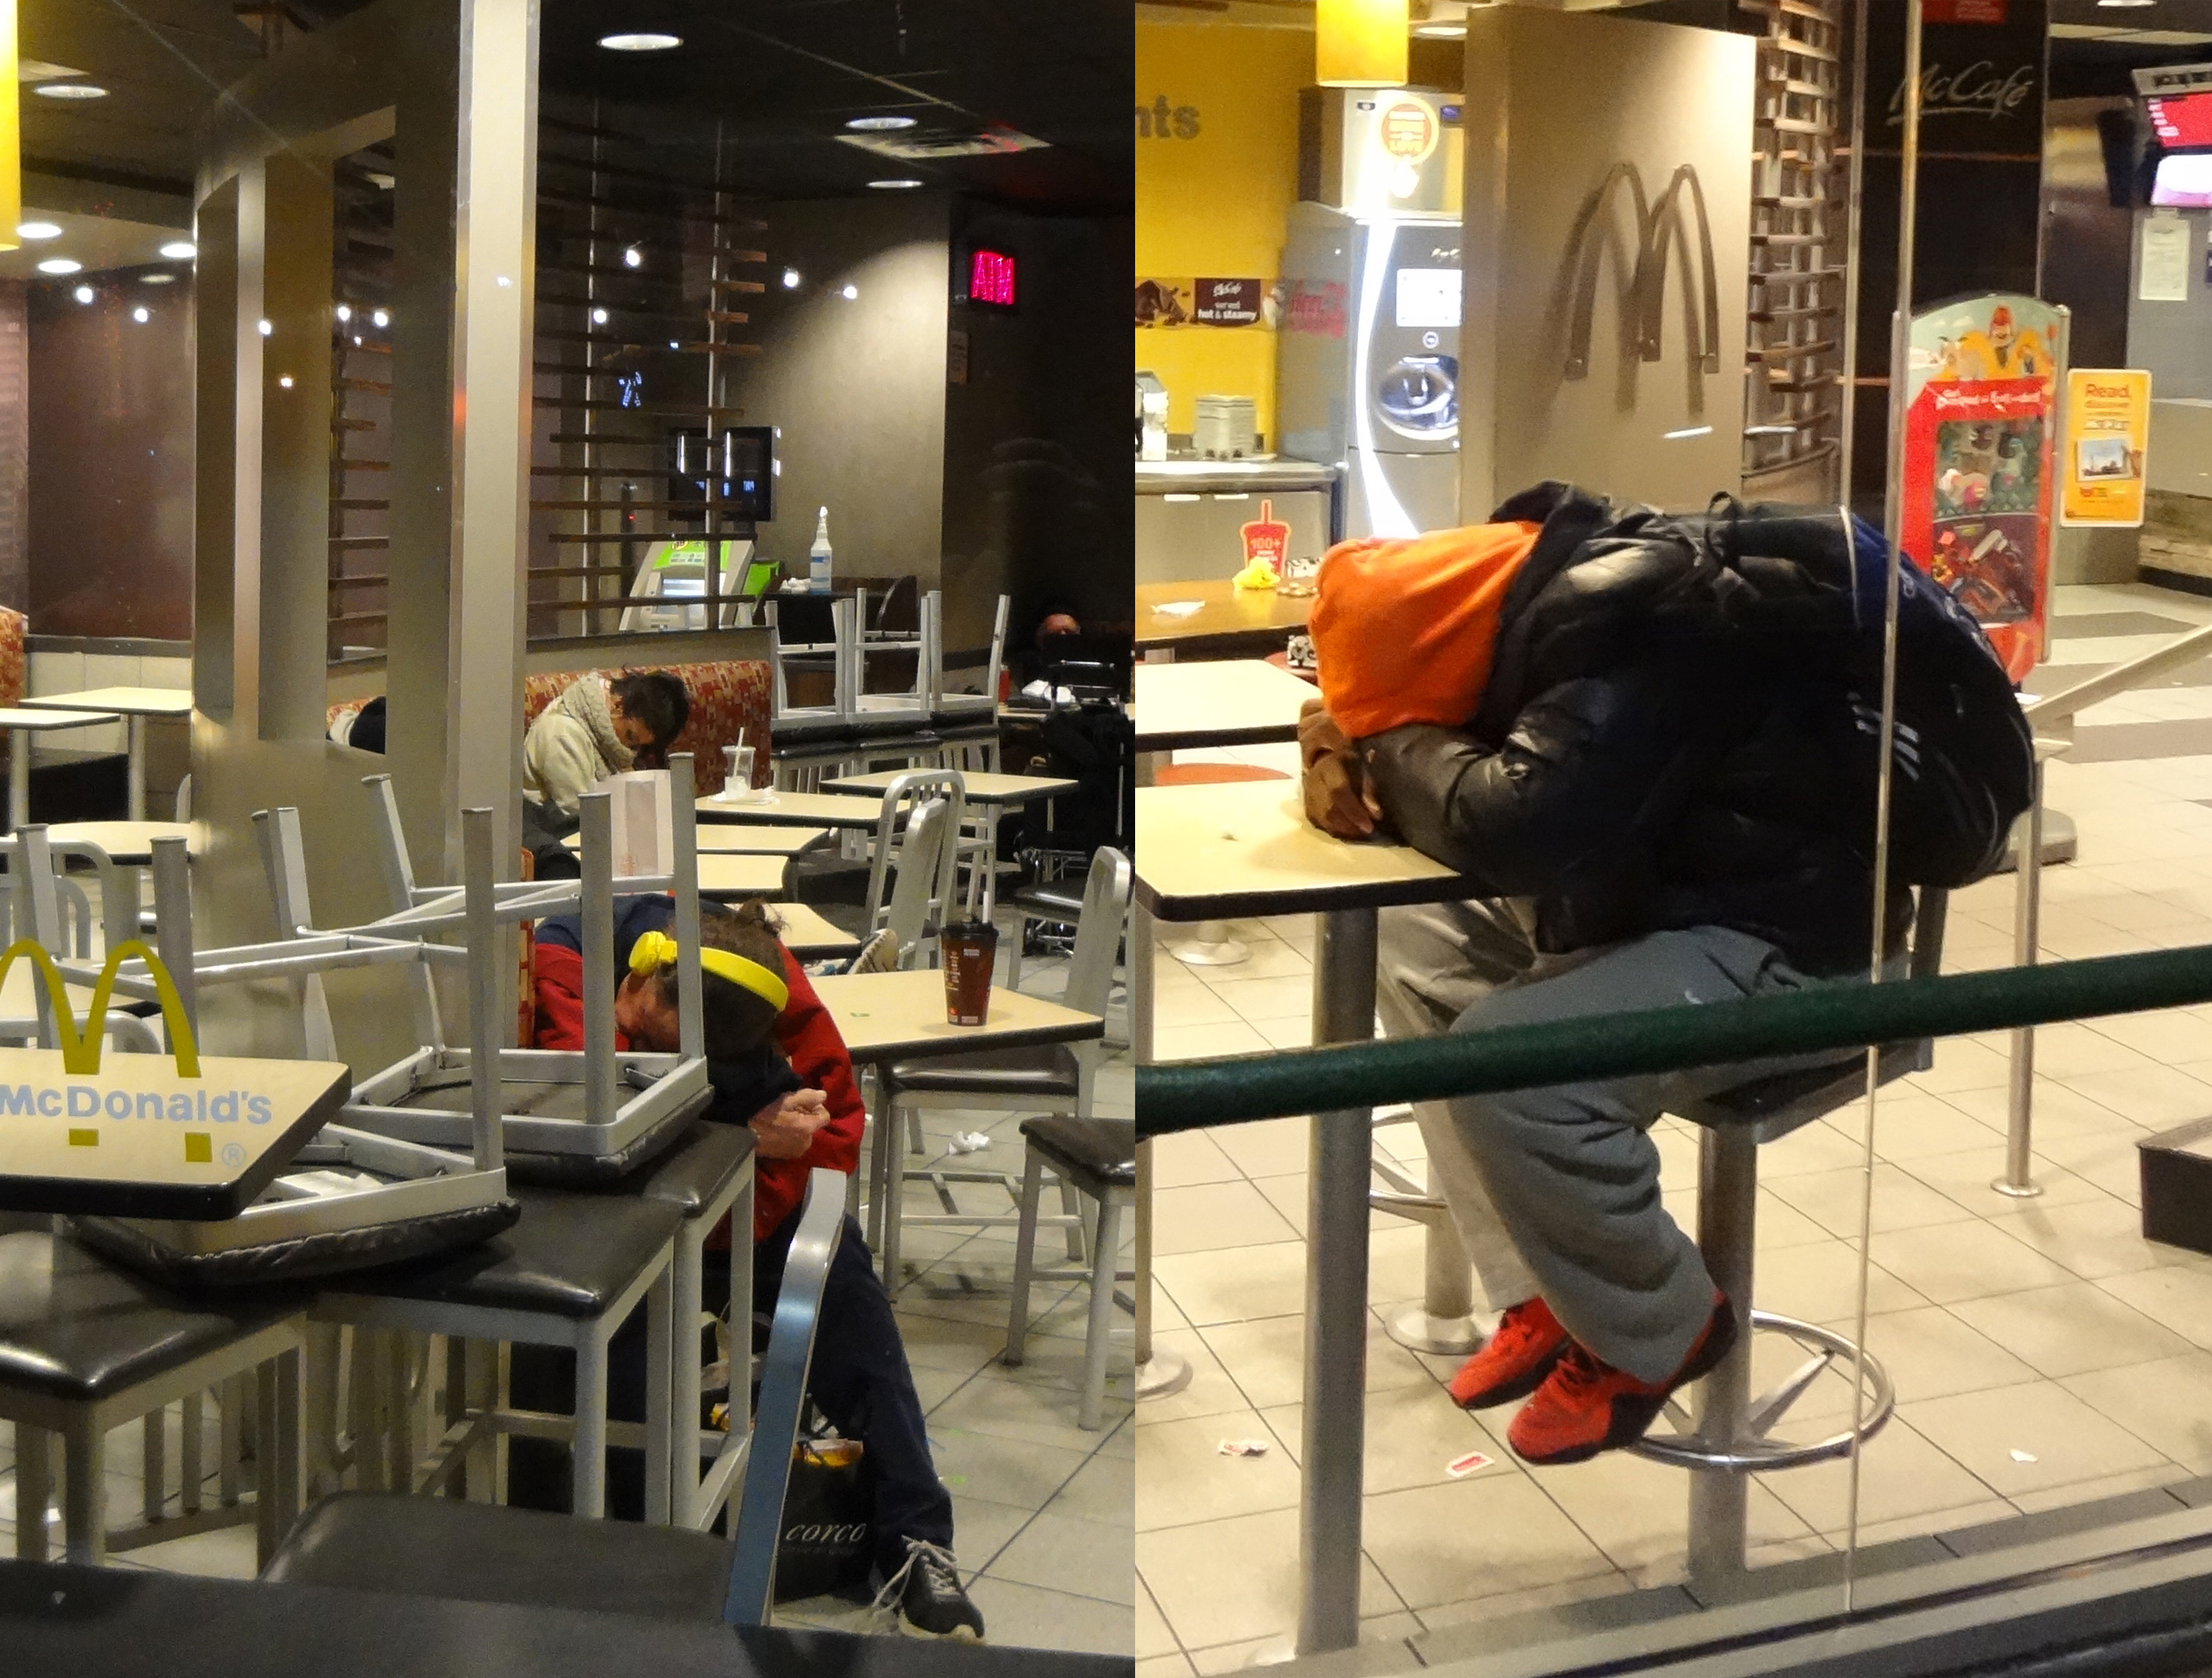 Homeless in McDonalds